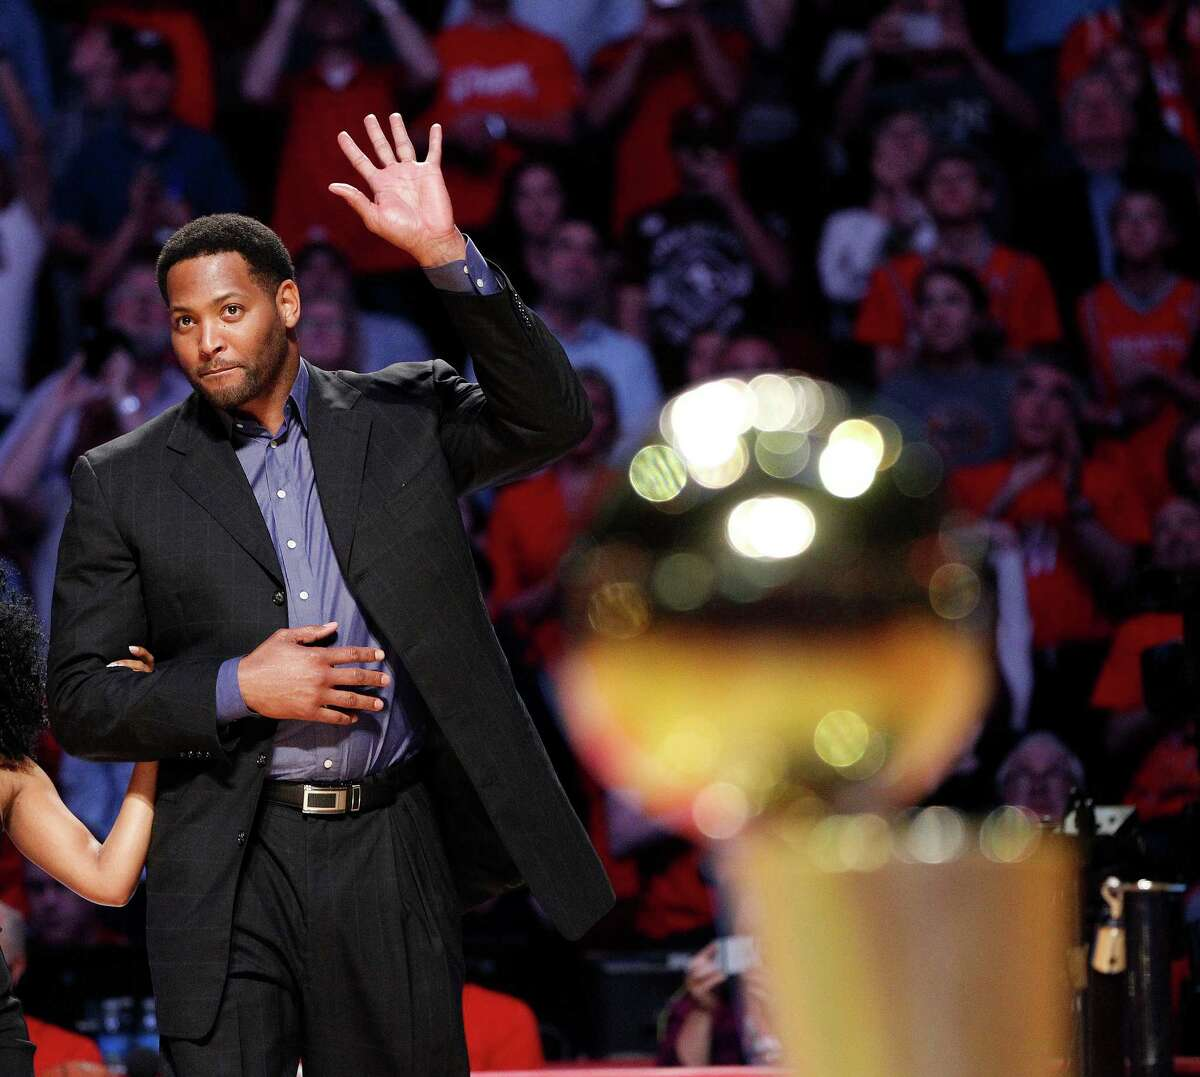 Former Houston Rockets Robert Horry was escorted to center court during the 20th Anniversary of the 1995 Houston Rockets championship during a halftime ceremony of an NBA game at Toyota Center on March 19, 2015, in Houston.